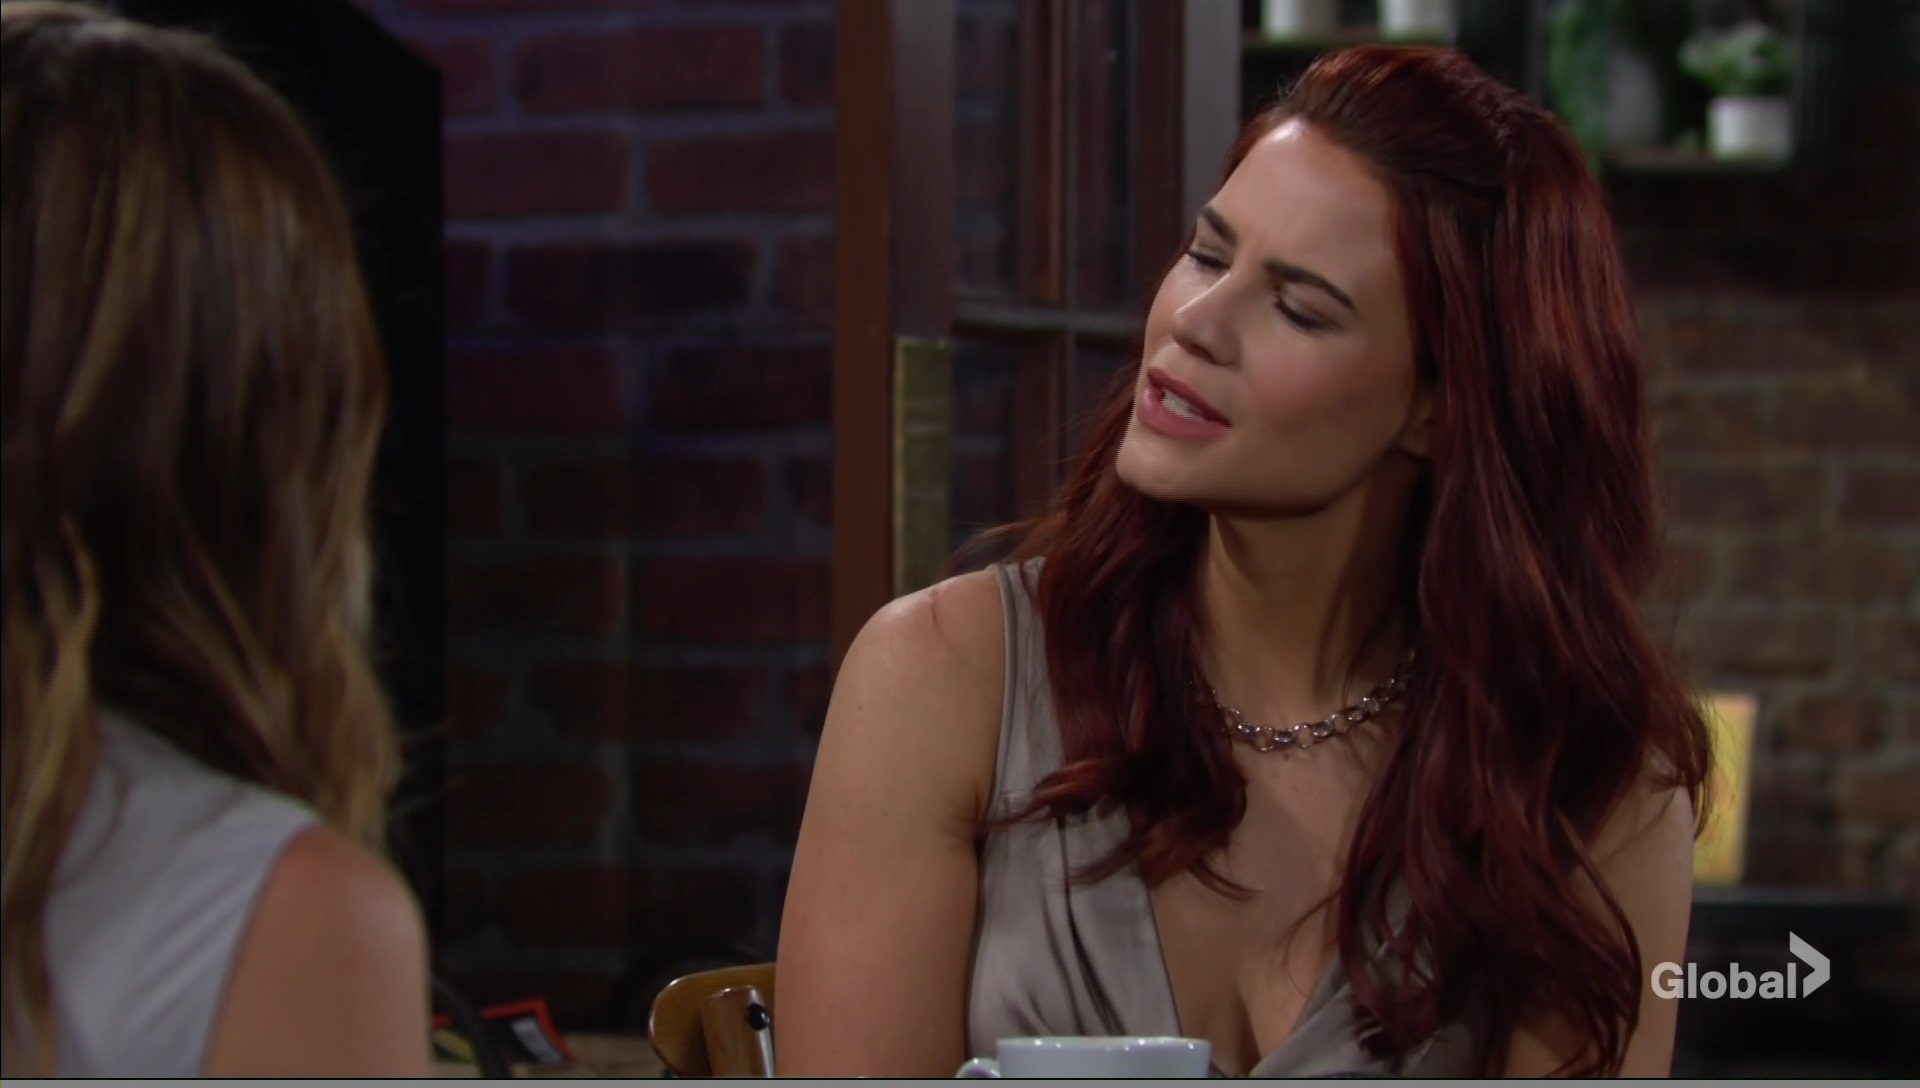 sally surprised by glo young restless